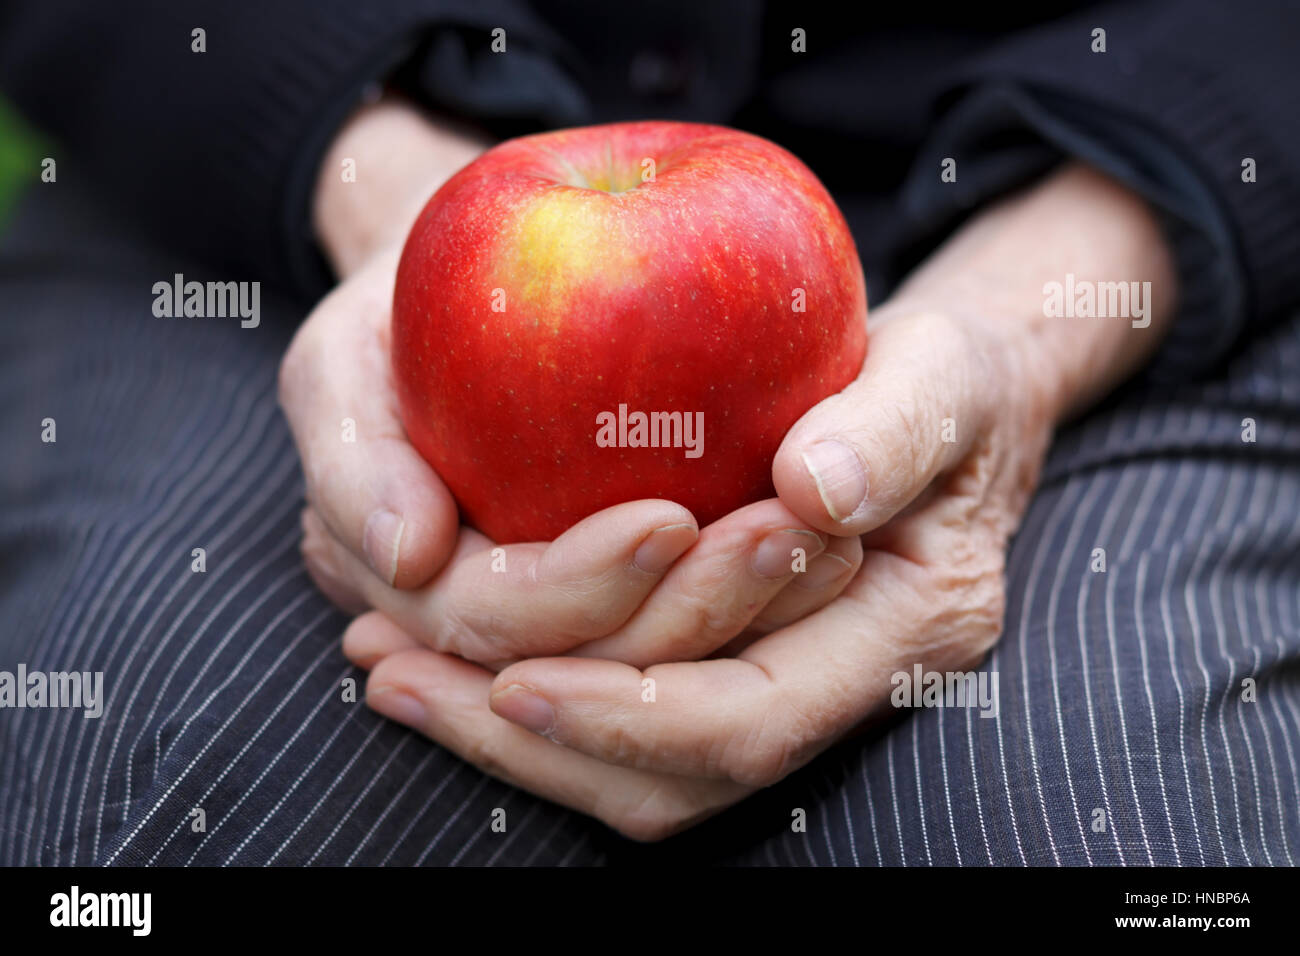 Close up of wrinkled hands holding an apple - Stock Image